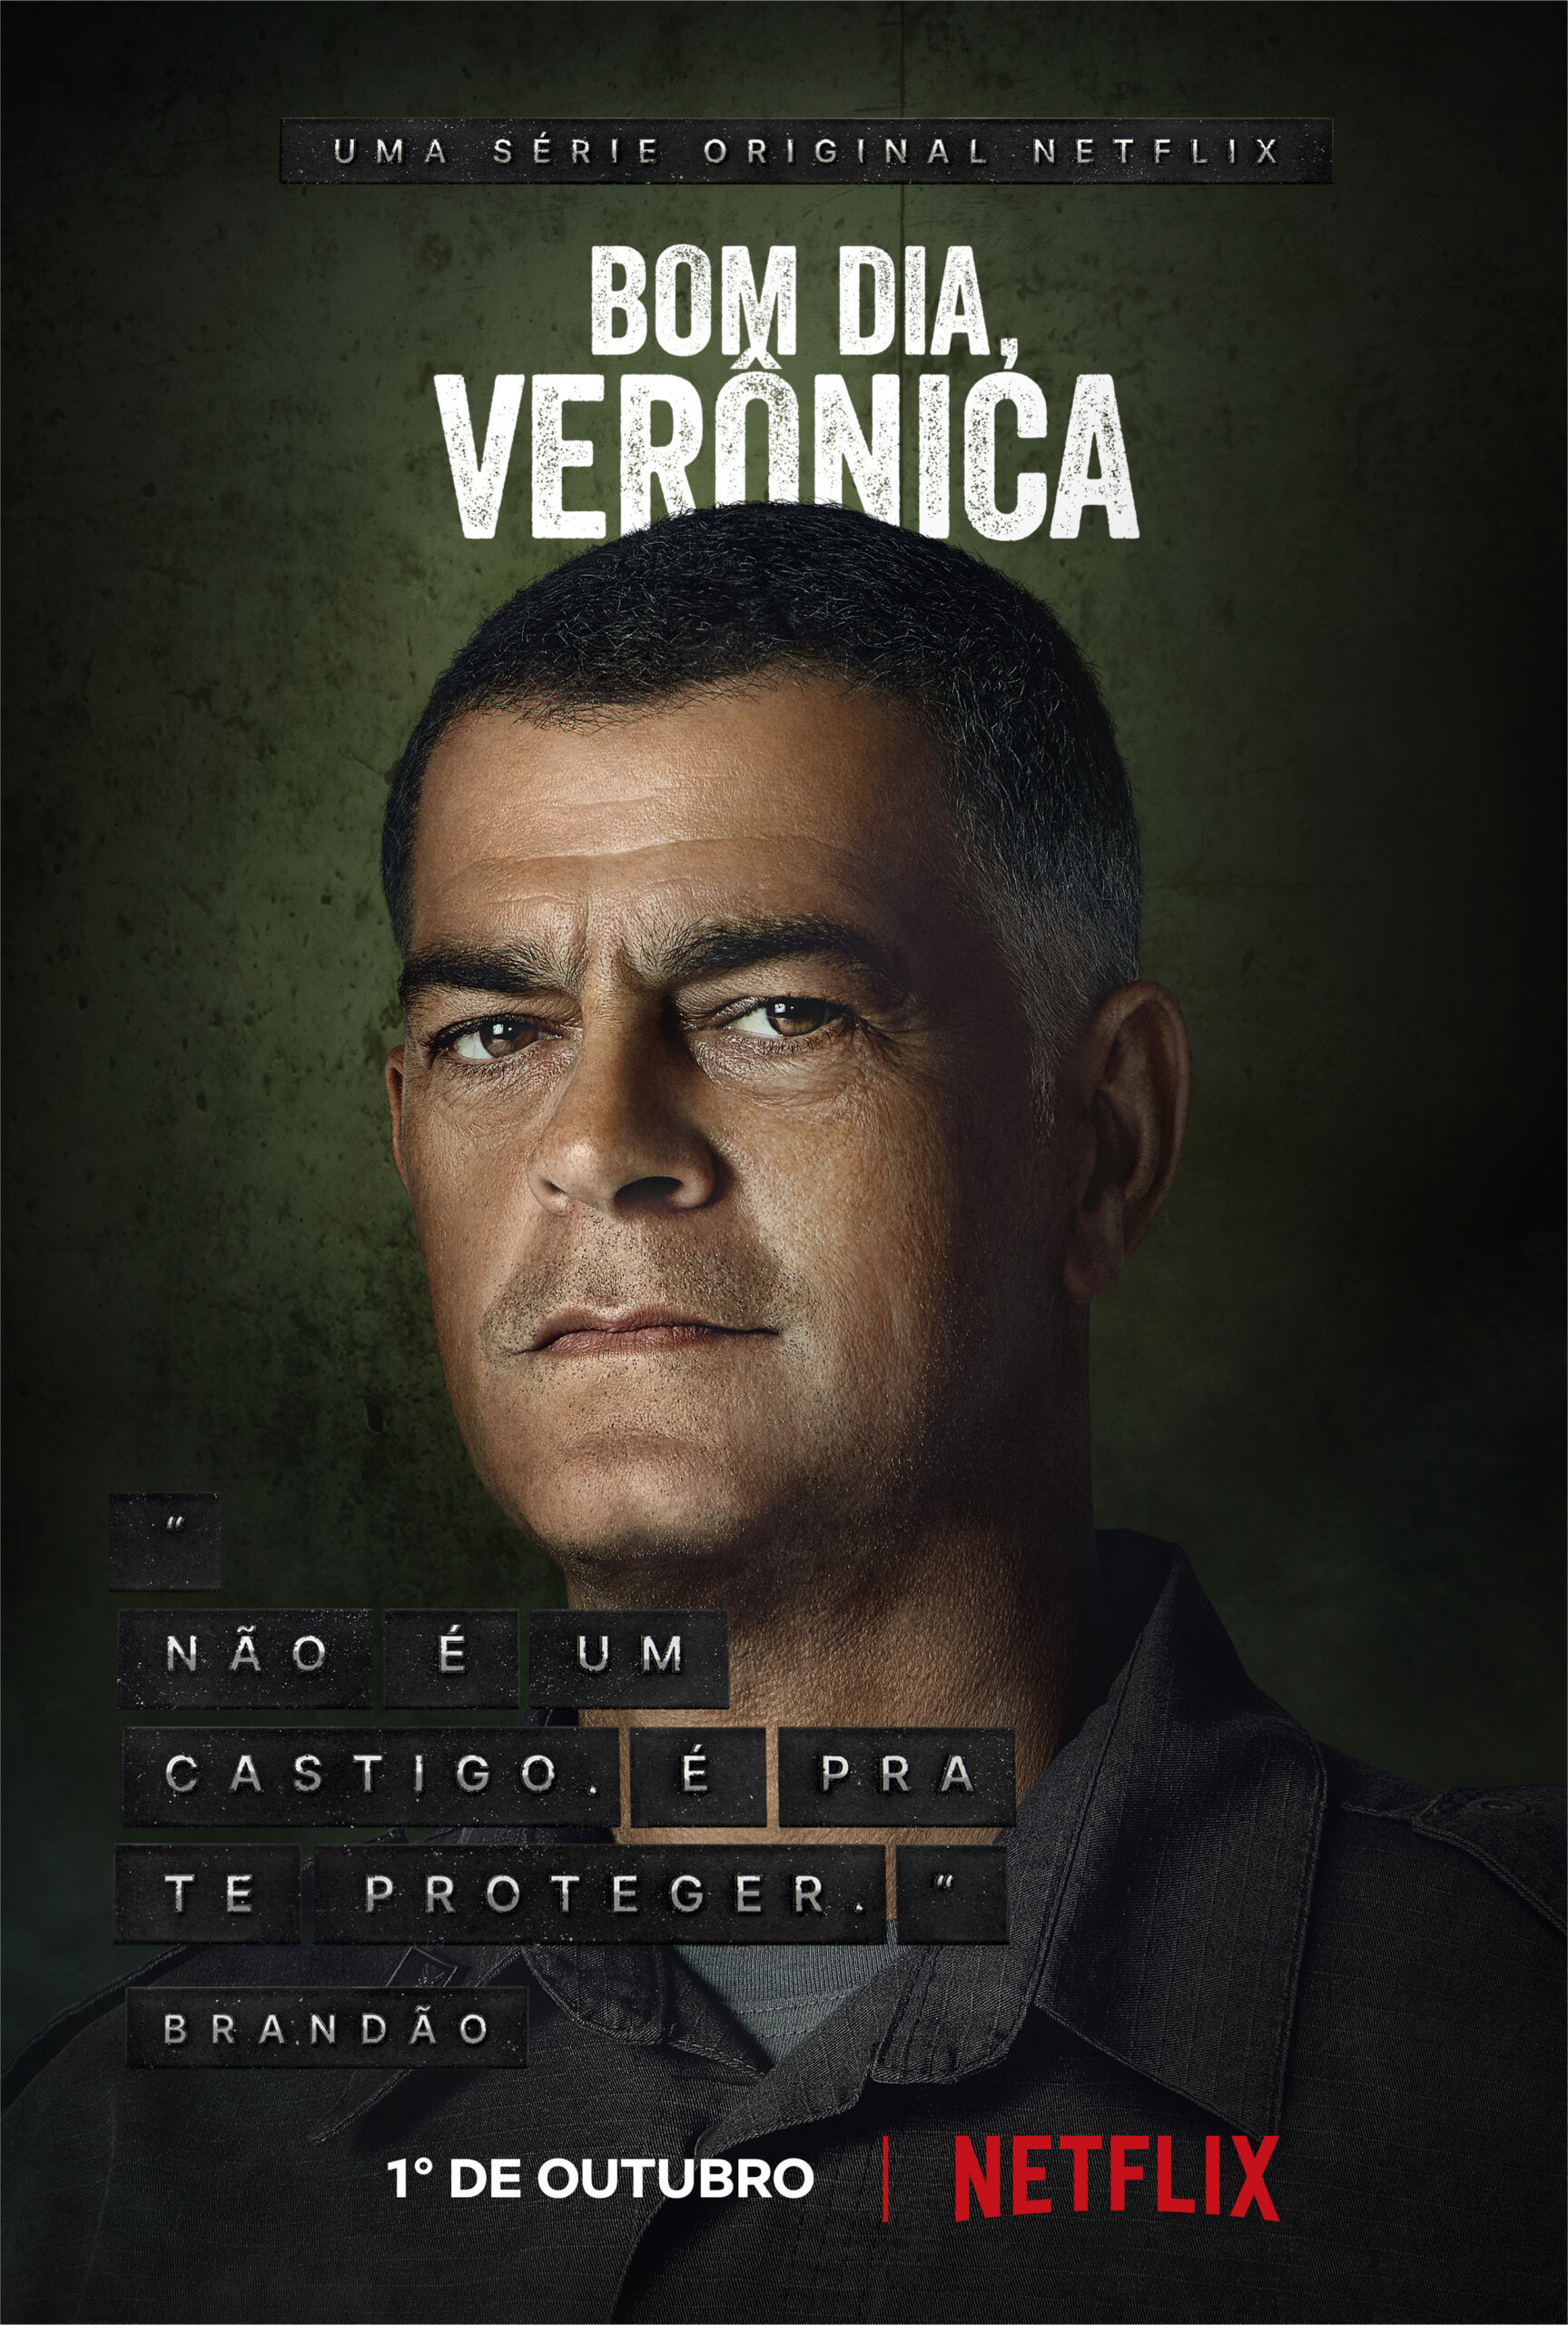 bom-dia-veronica-posters-2-scaled